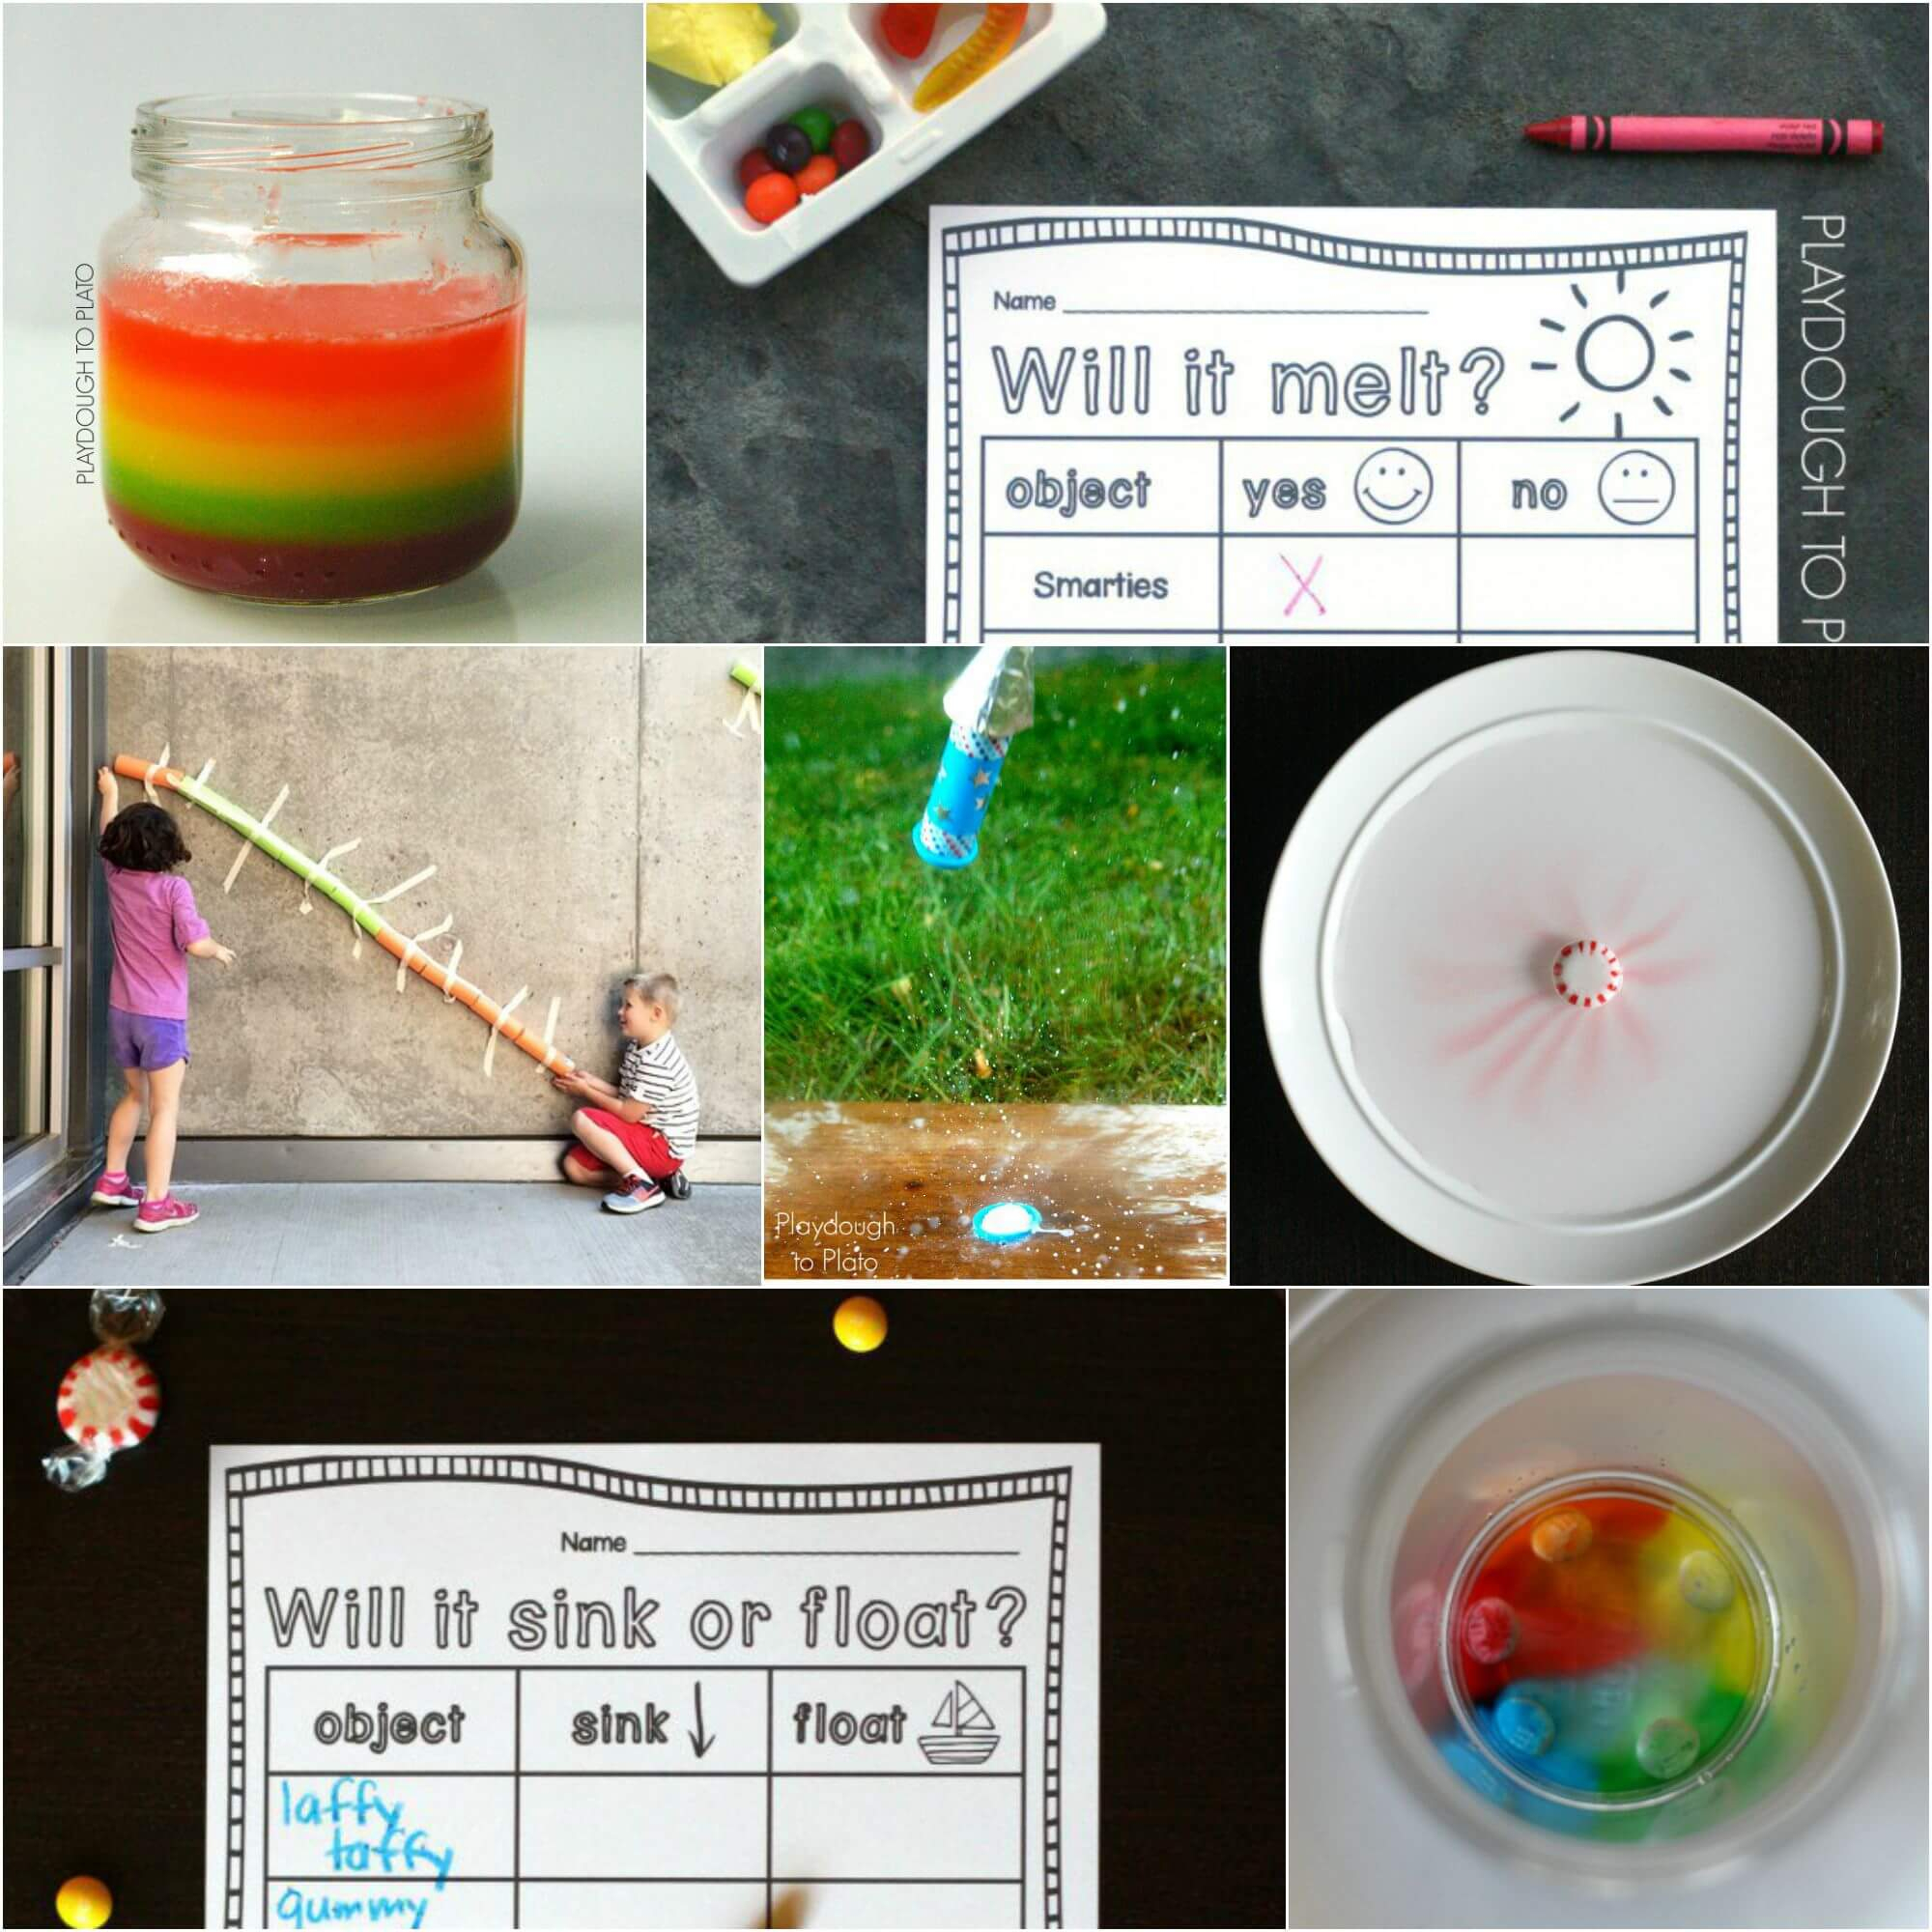 10 Nice Science Ideas For 8Th Graders 21 candy science experiments playdough to plato 6 2021